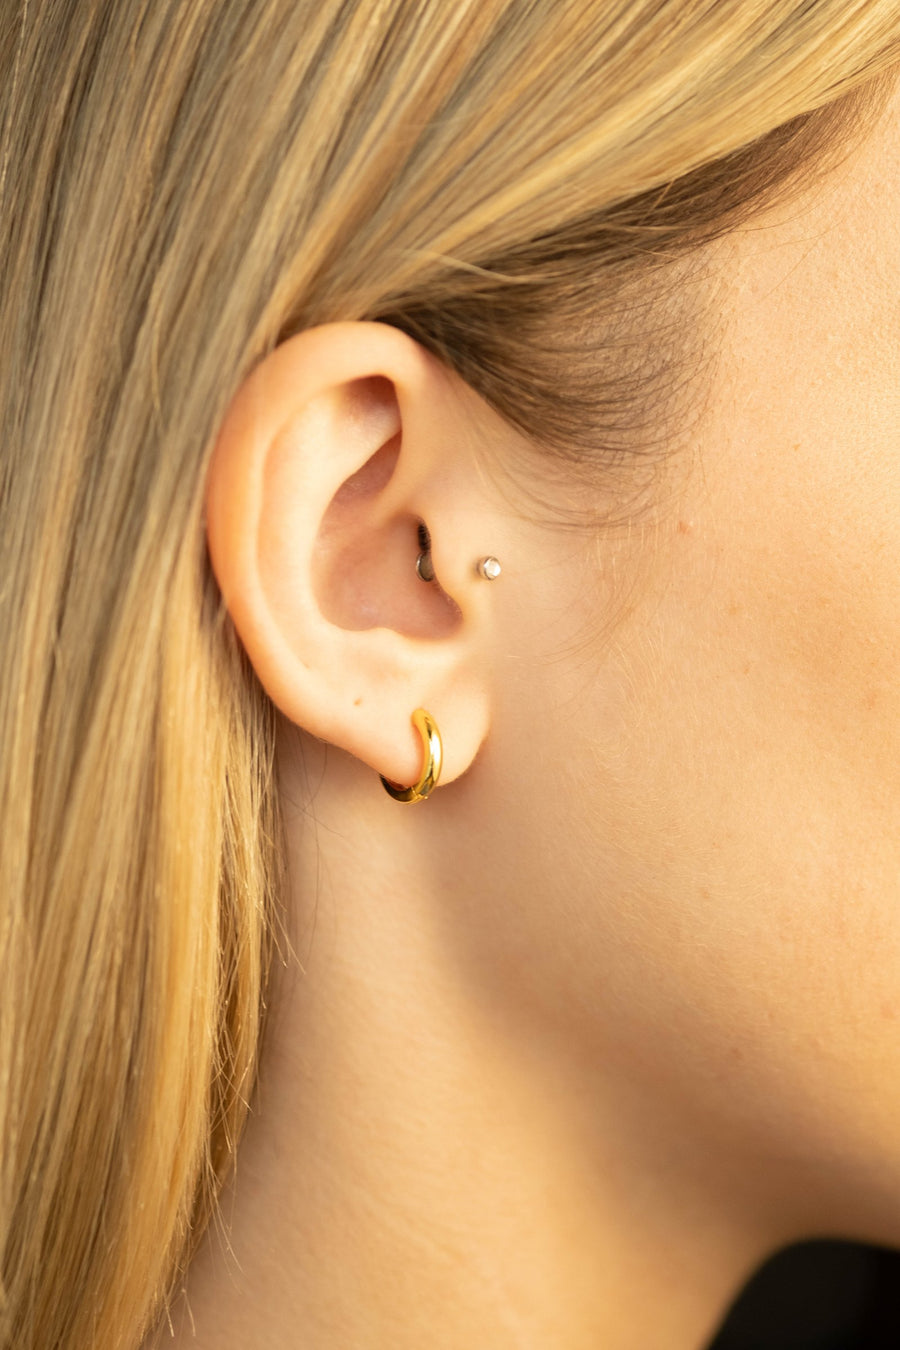 Gold Small Hoops Earrings